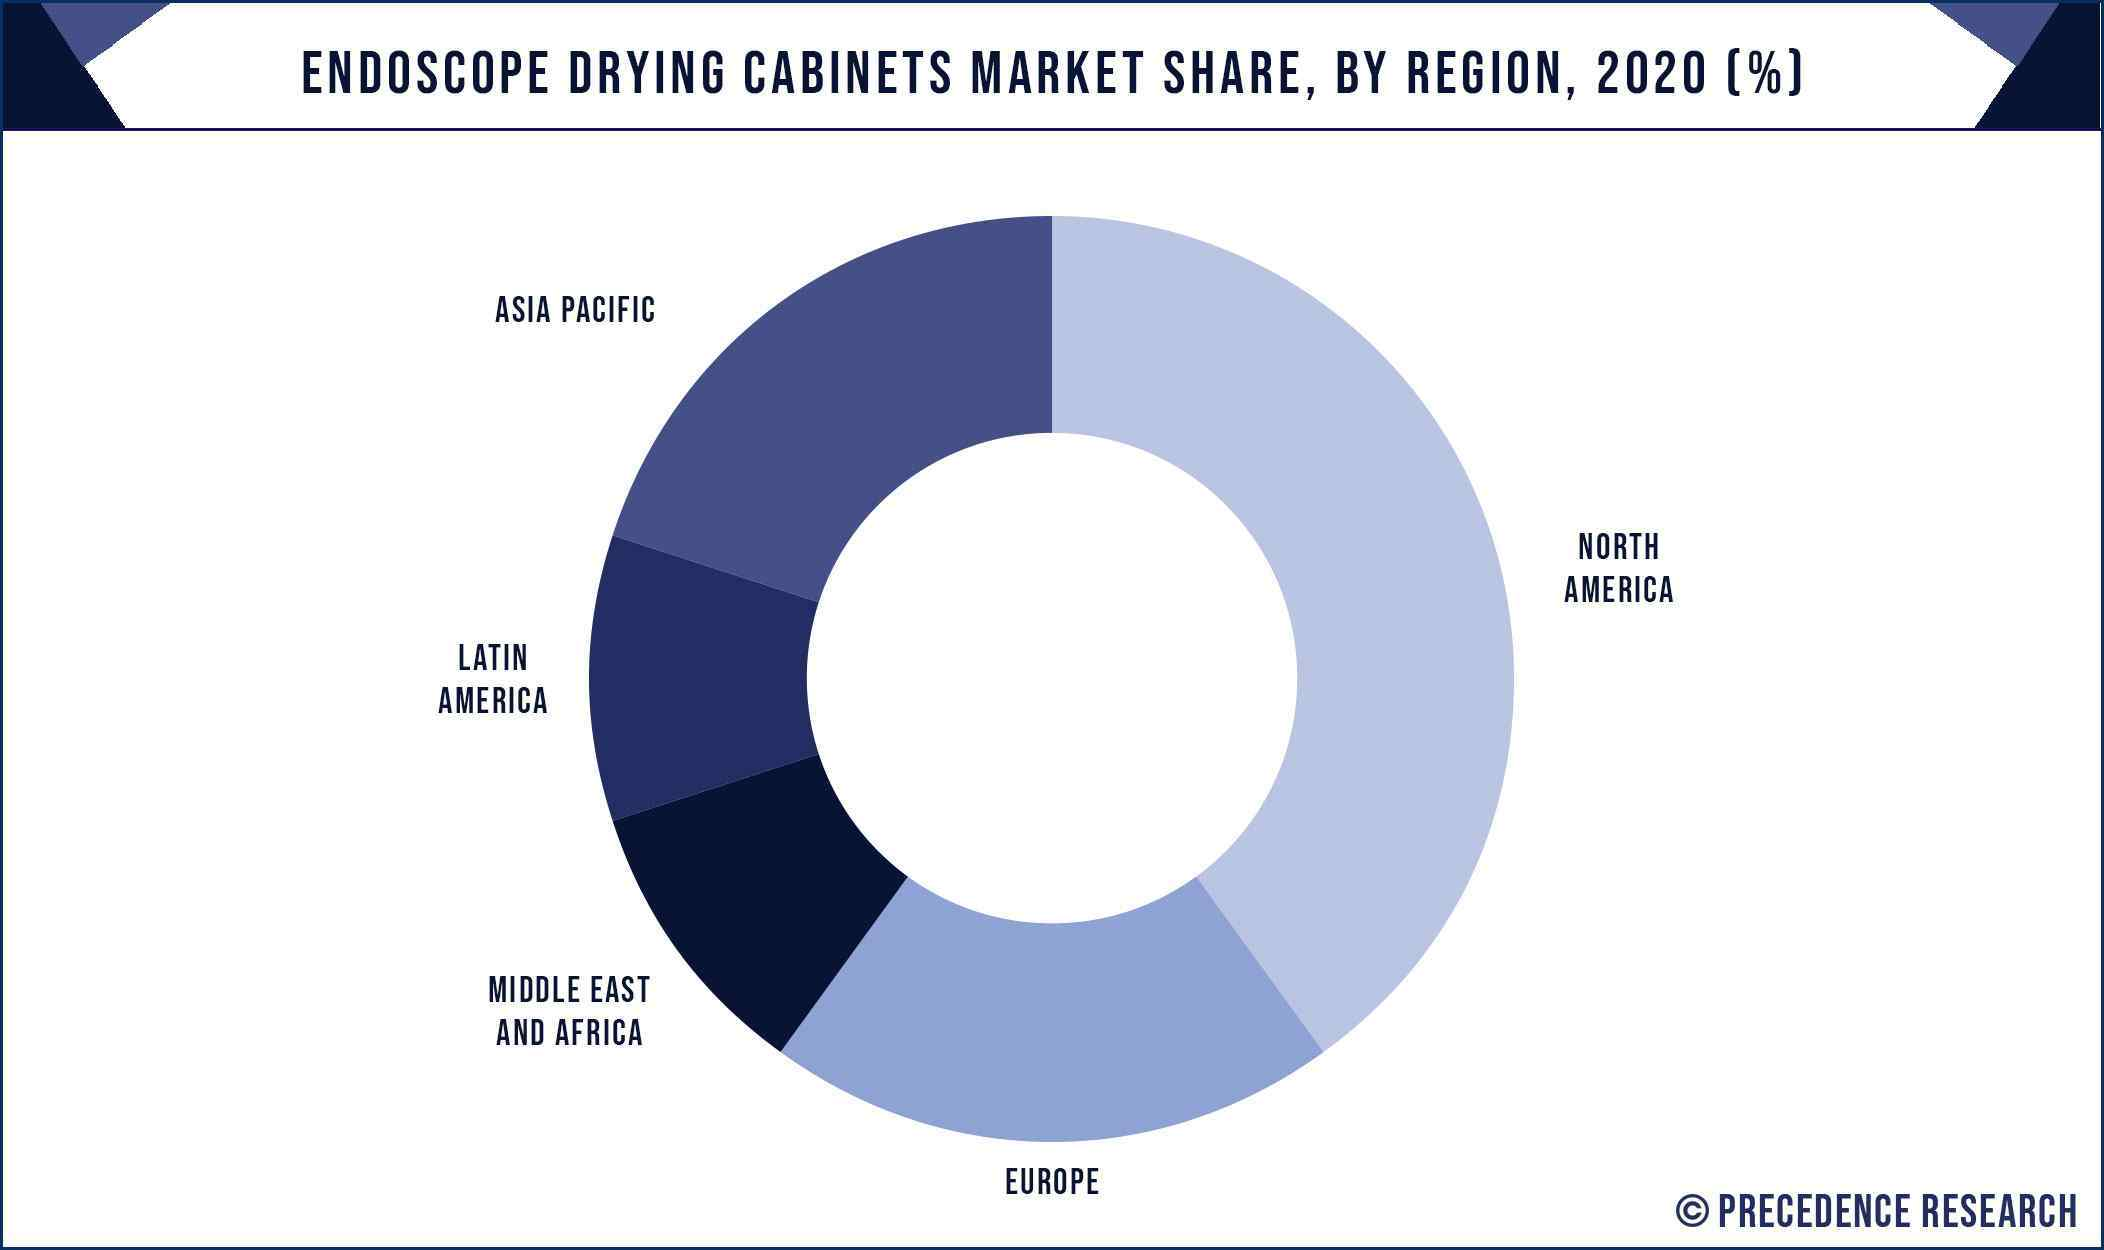 Endoscope Drying Cabinets Market Share, By Region, 2020 (%)